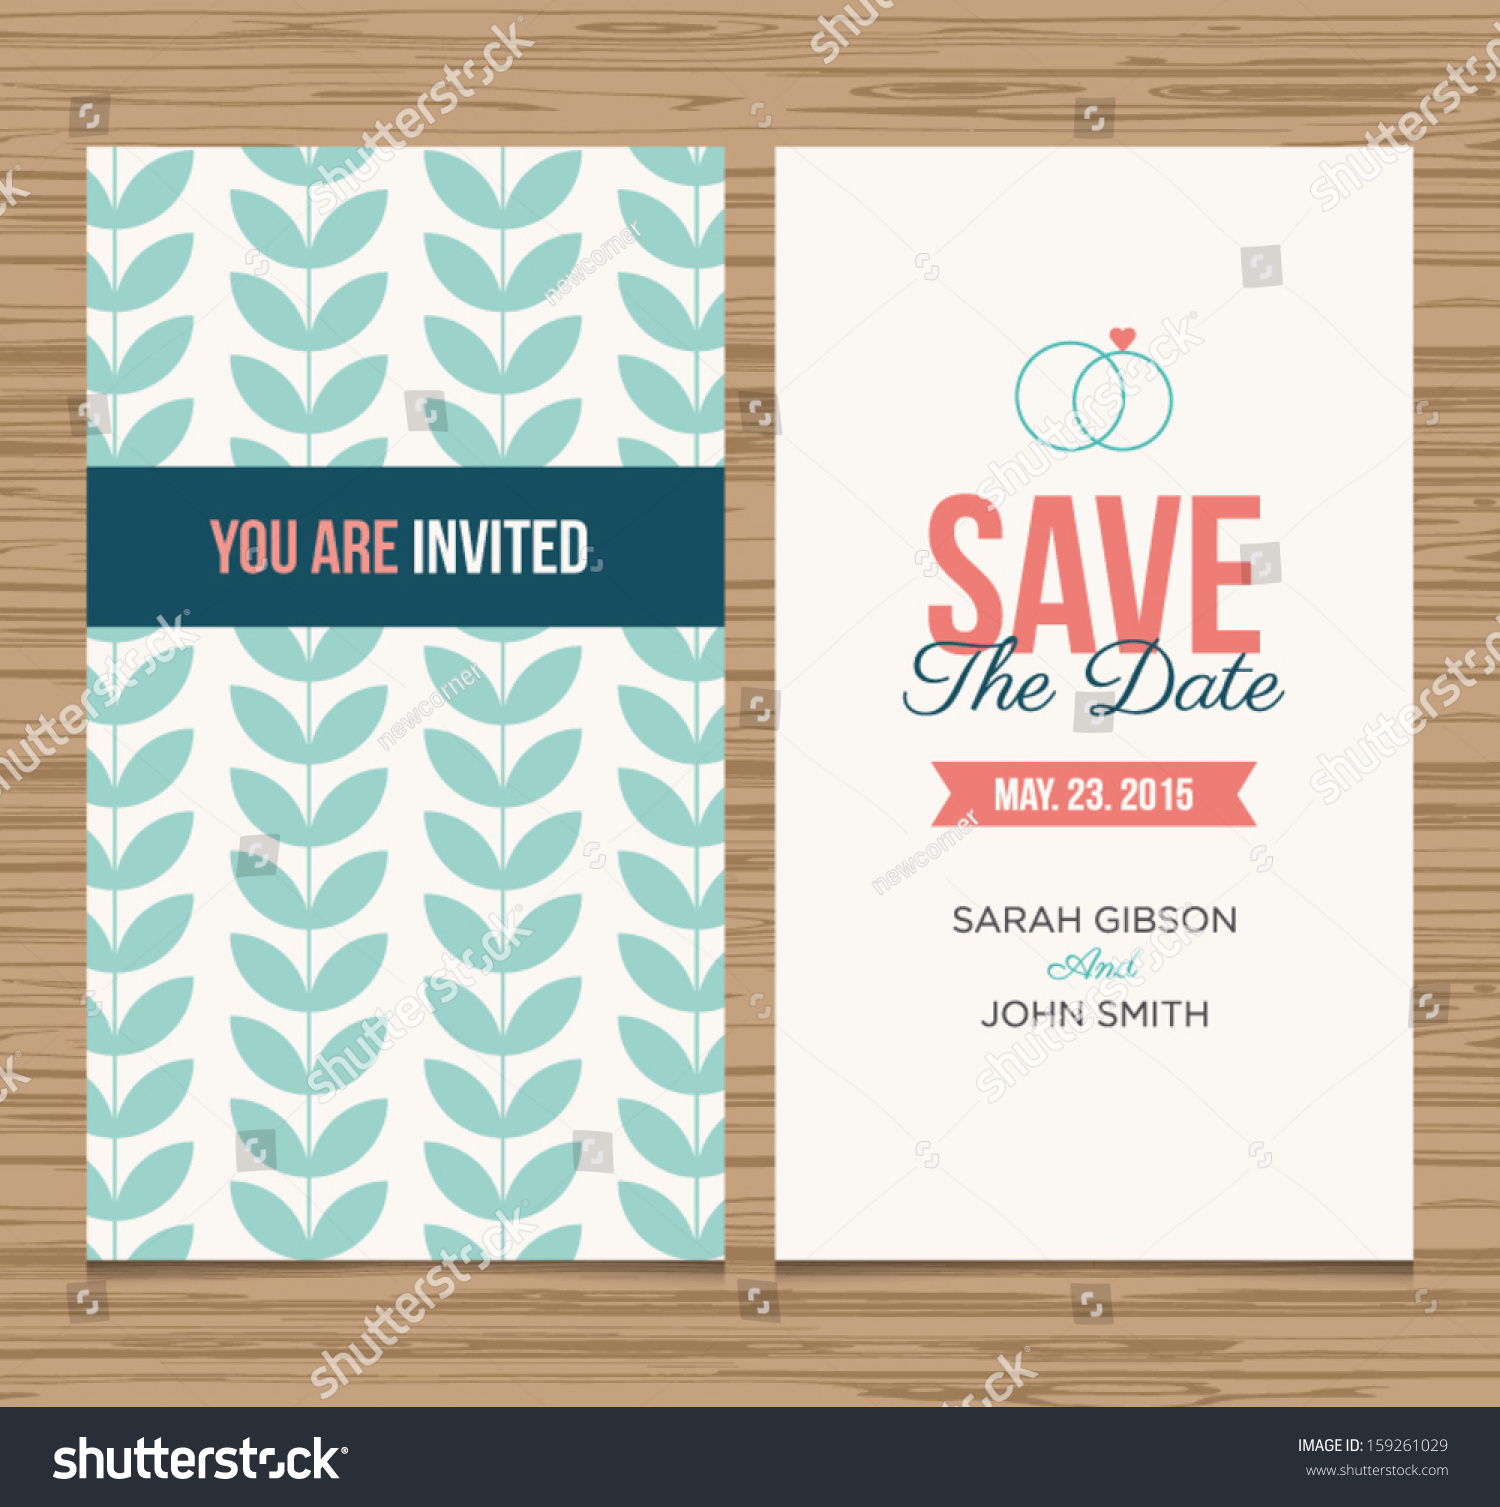 Date Invitation Templates – Card Invitation Maker